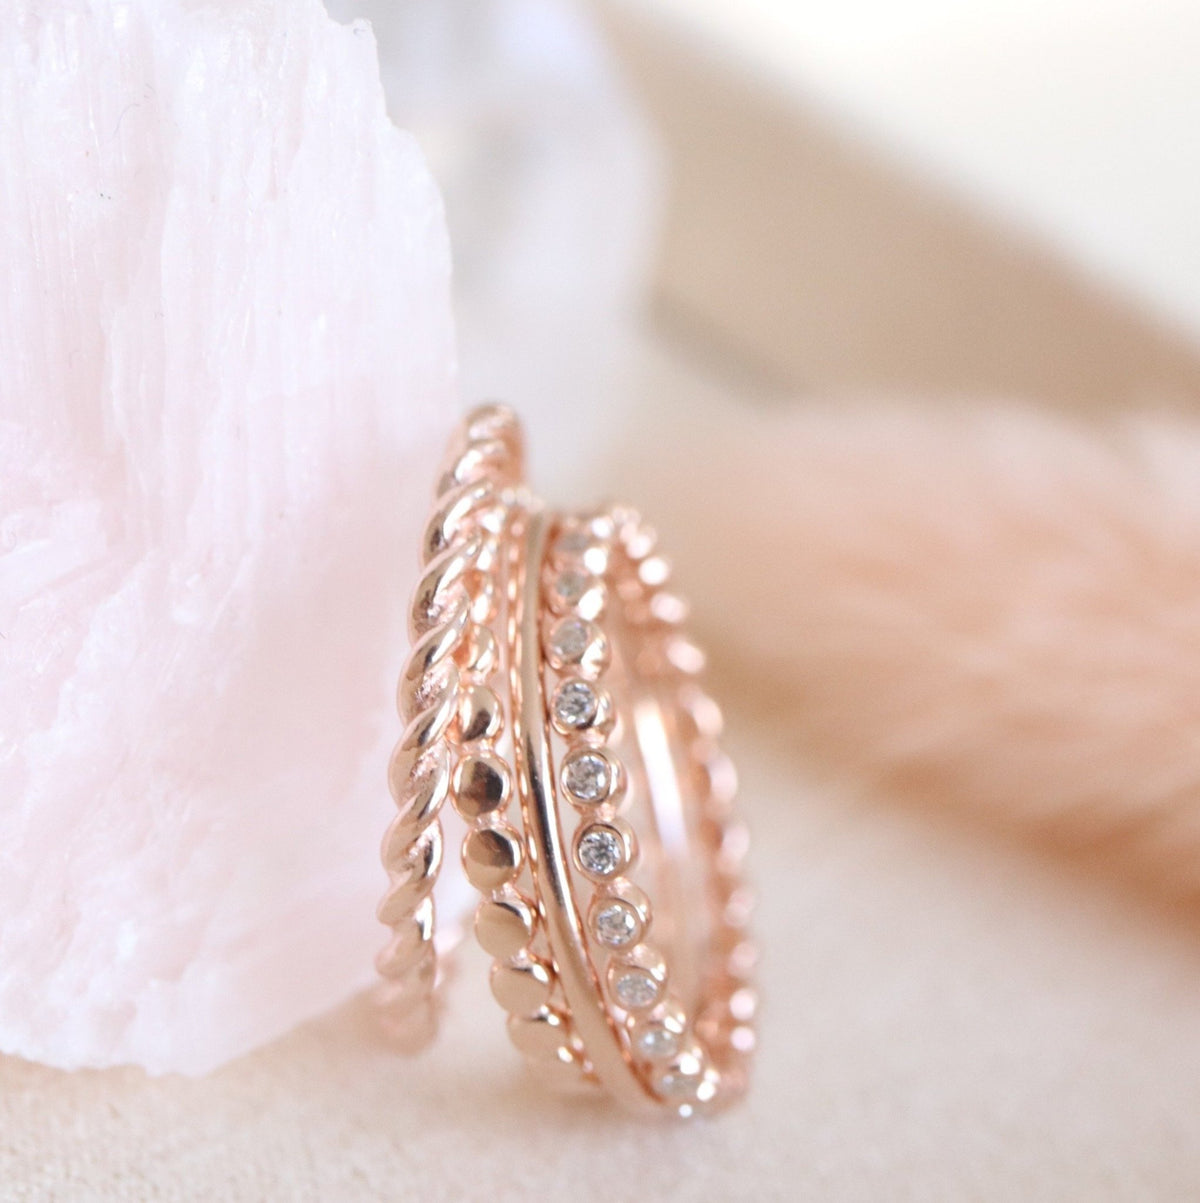 LOVE THIN DISK BAND RING - ROSE GOLD - SO PRETTY CARA COTTER